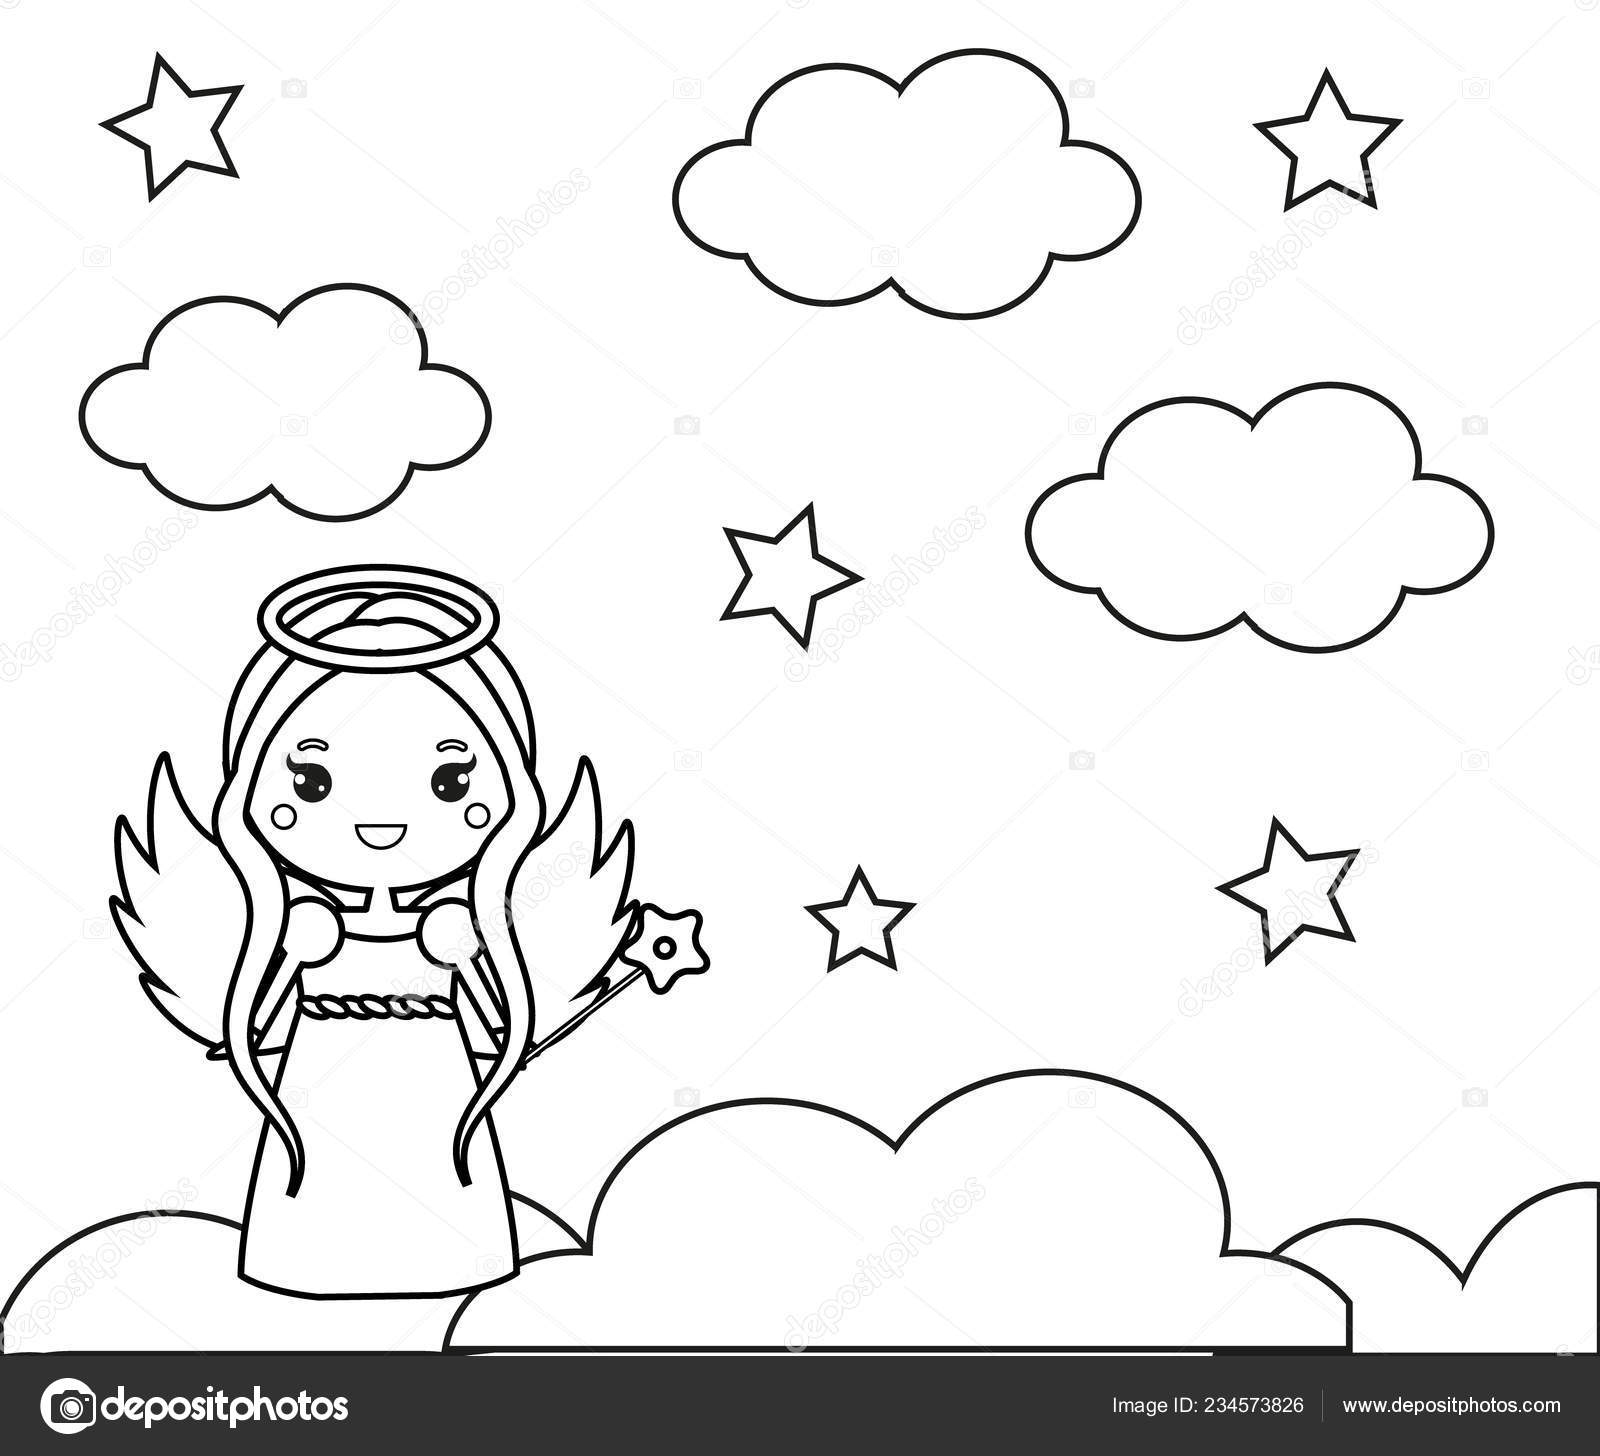 photograph relating to Printable Clouds named Angel drawing for small children Coloring Webpage Adorable Angel Clouds